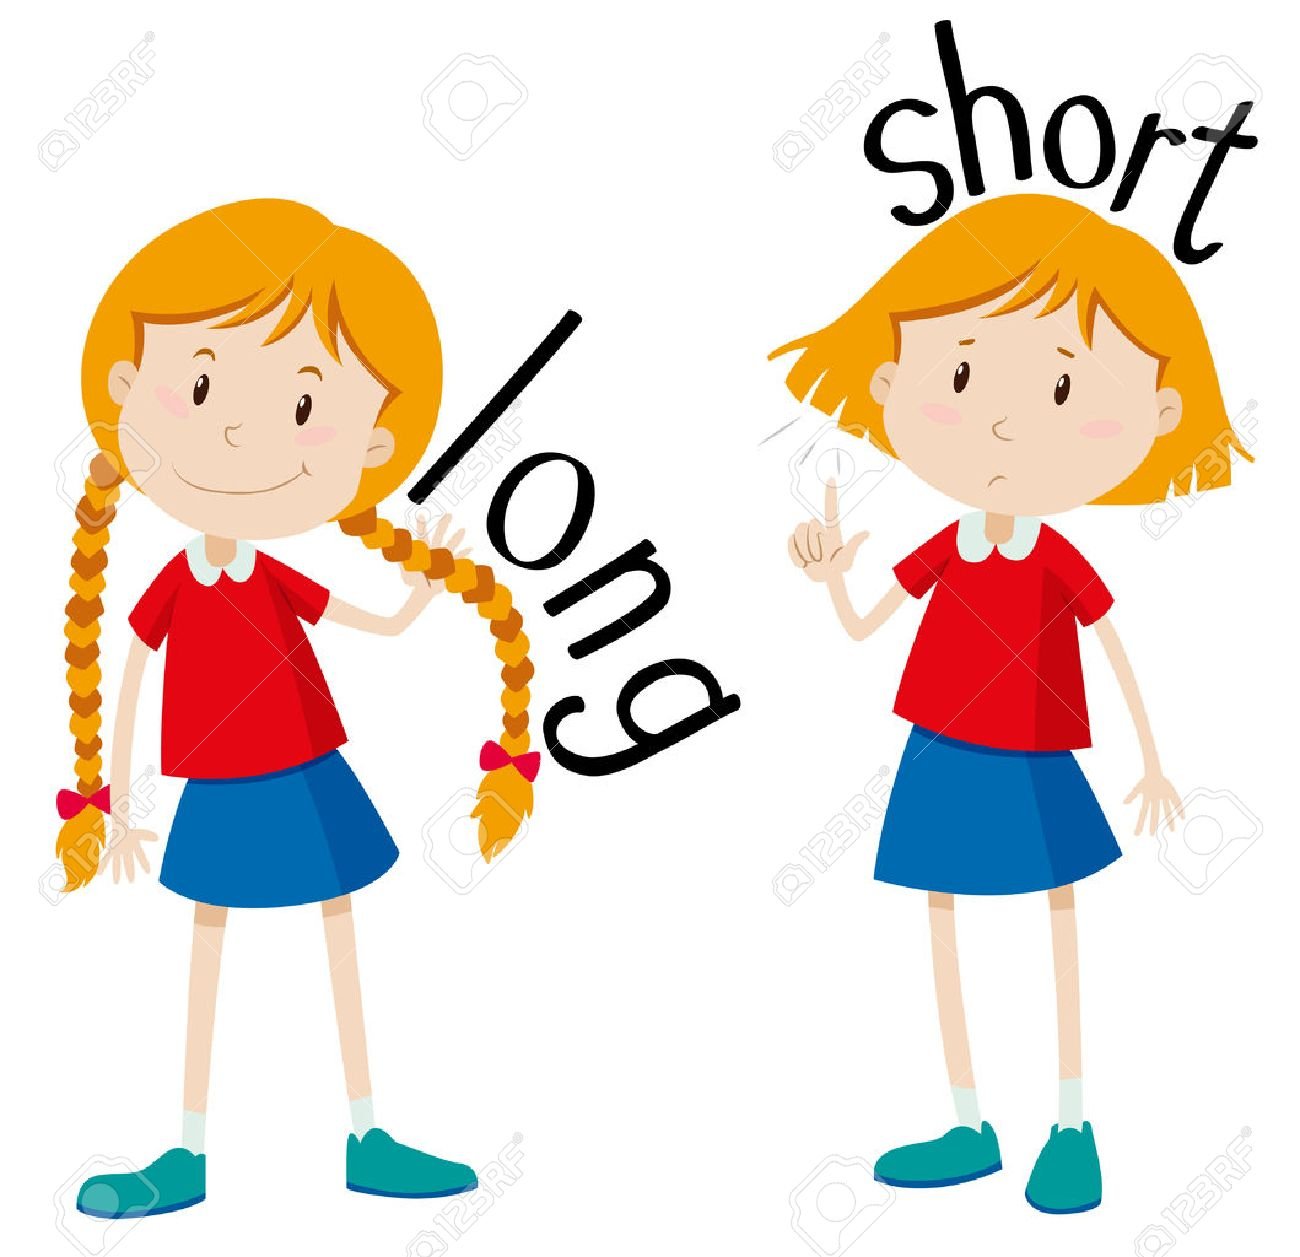 Opposite adjectives long and short illustration.